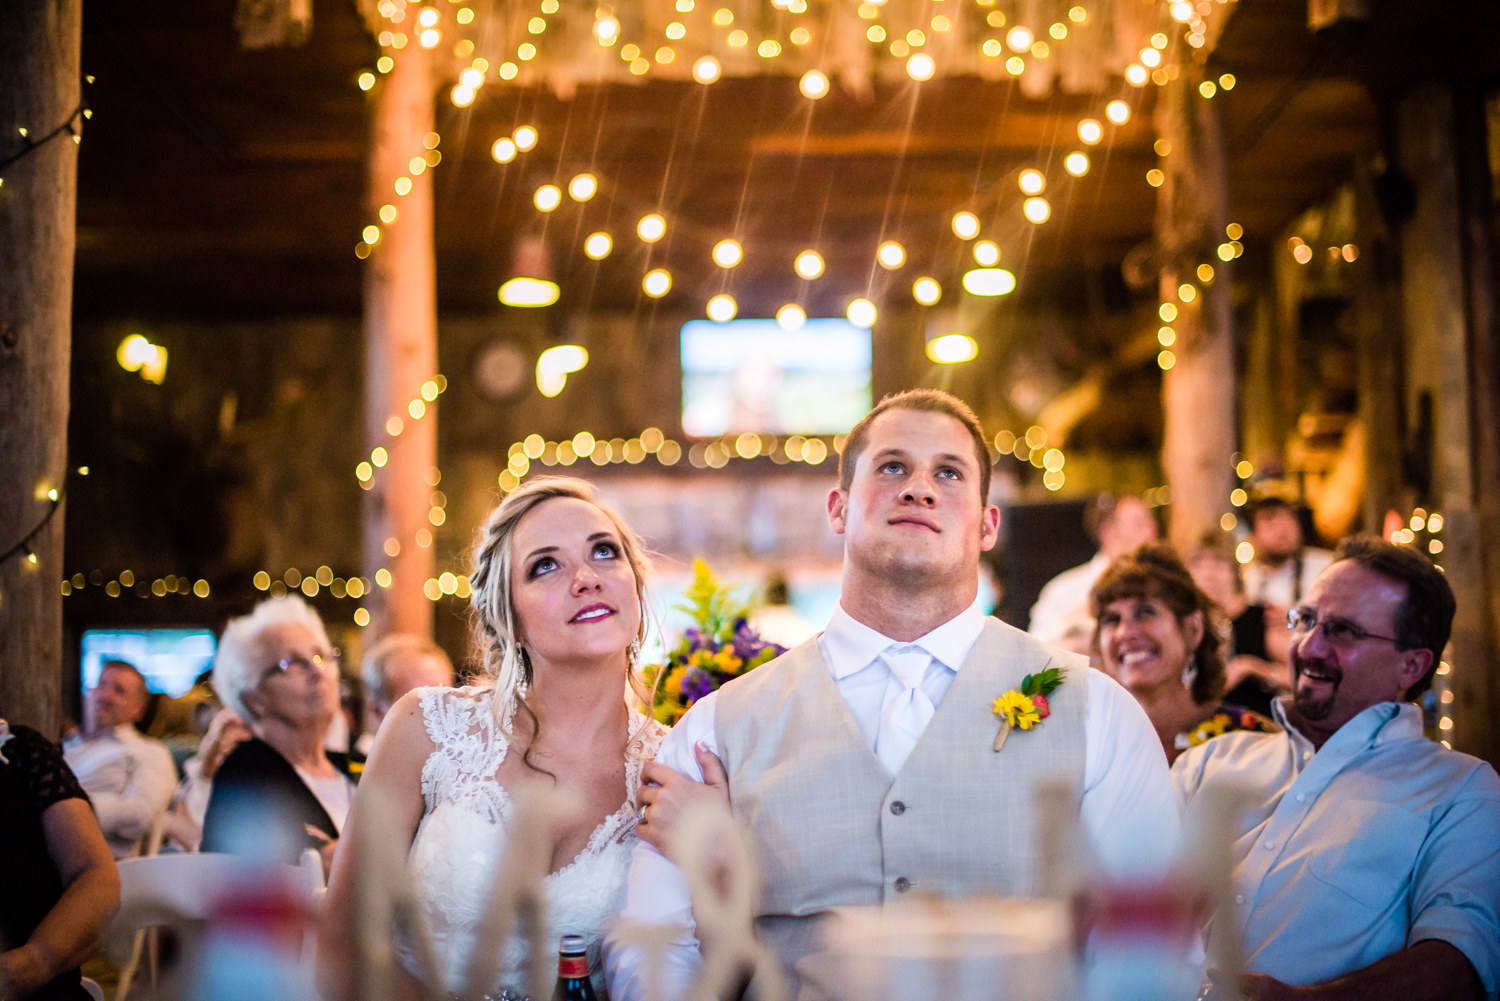 Watching their wedding video. Wedding at The barn at Evergreen Memorial. Photographed by JMGant Photography.